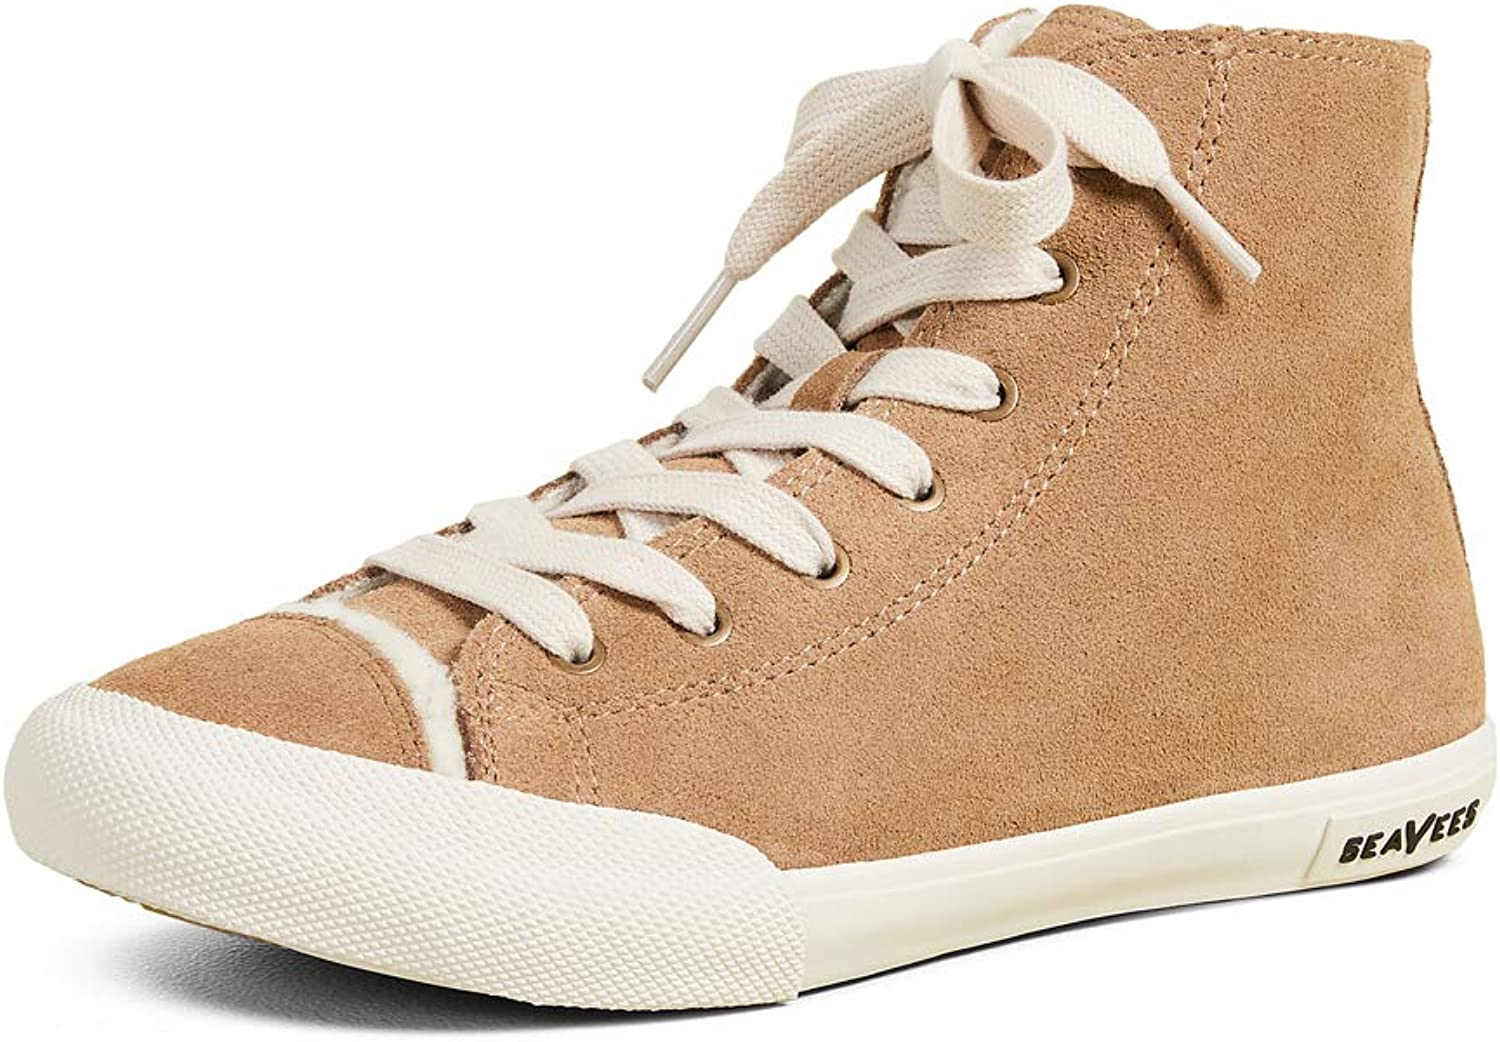 SEAVEES Women's Army Issue High Sneakers